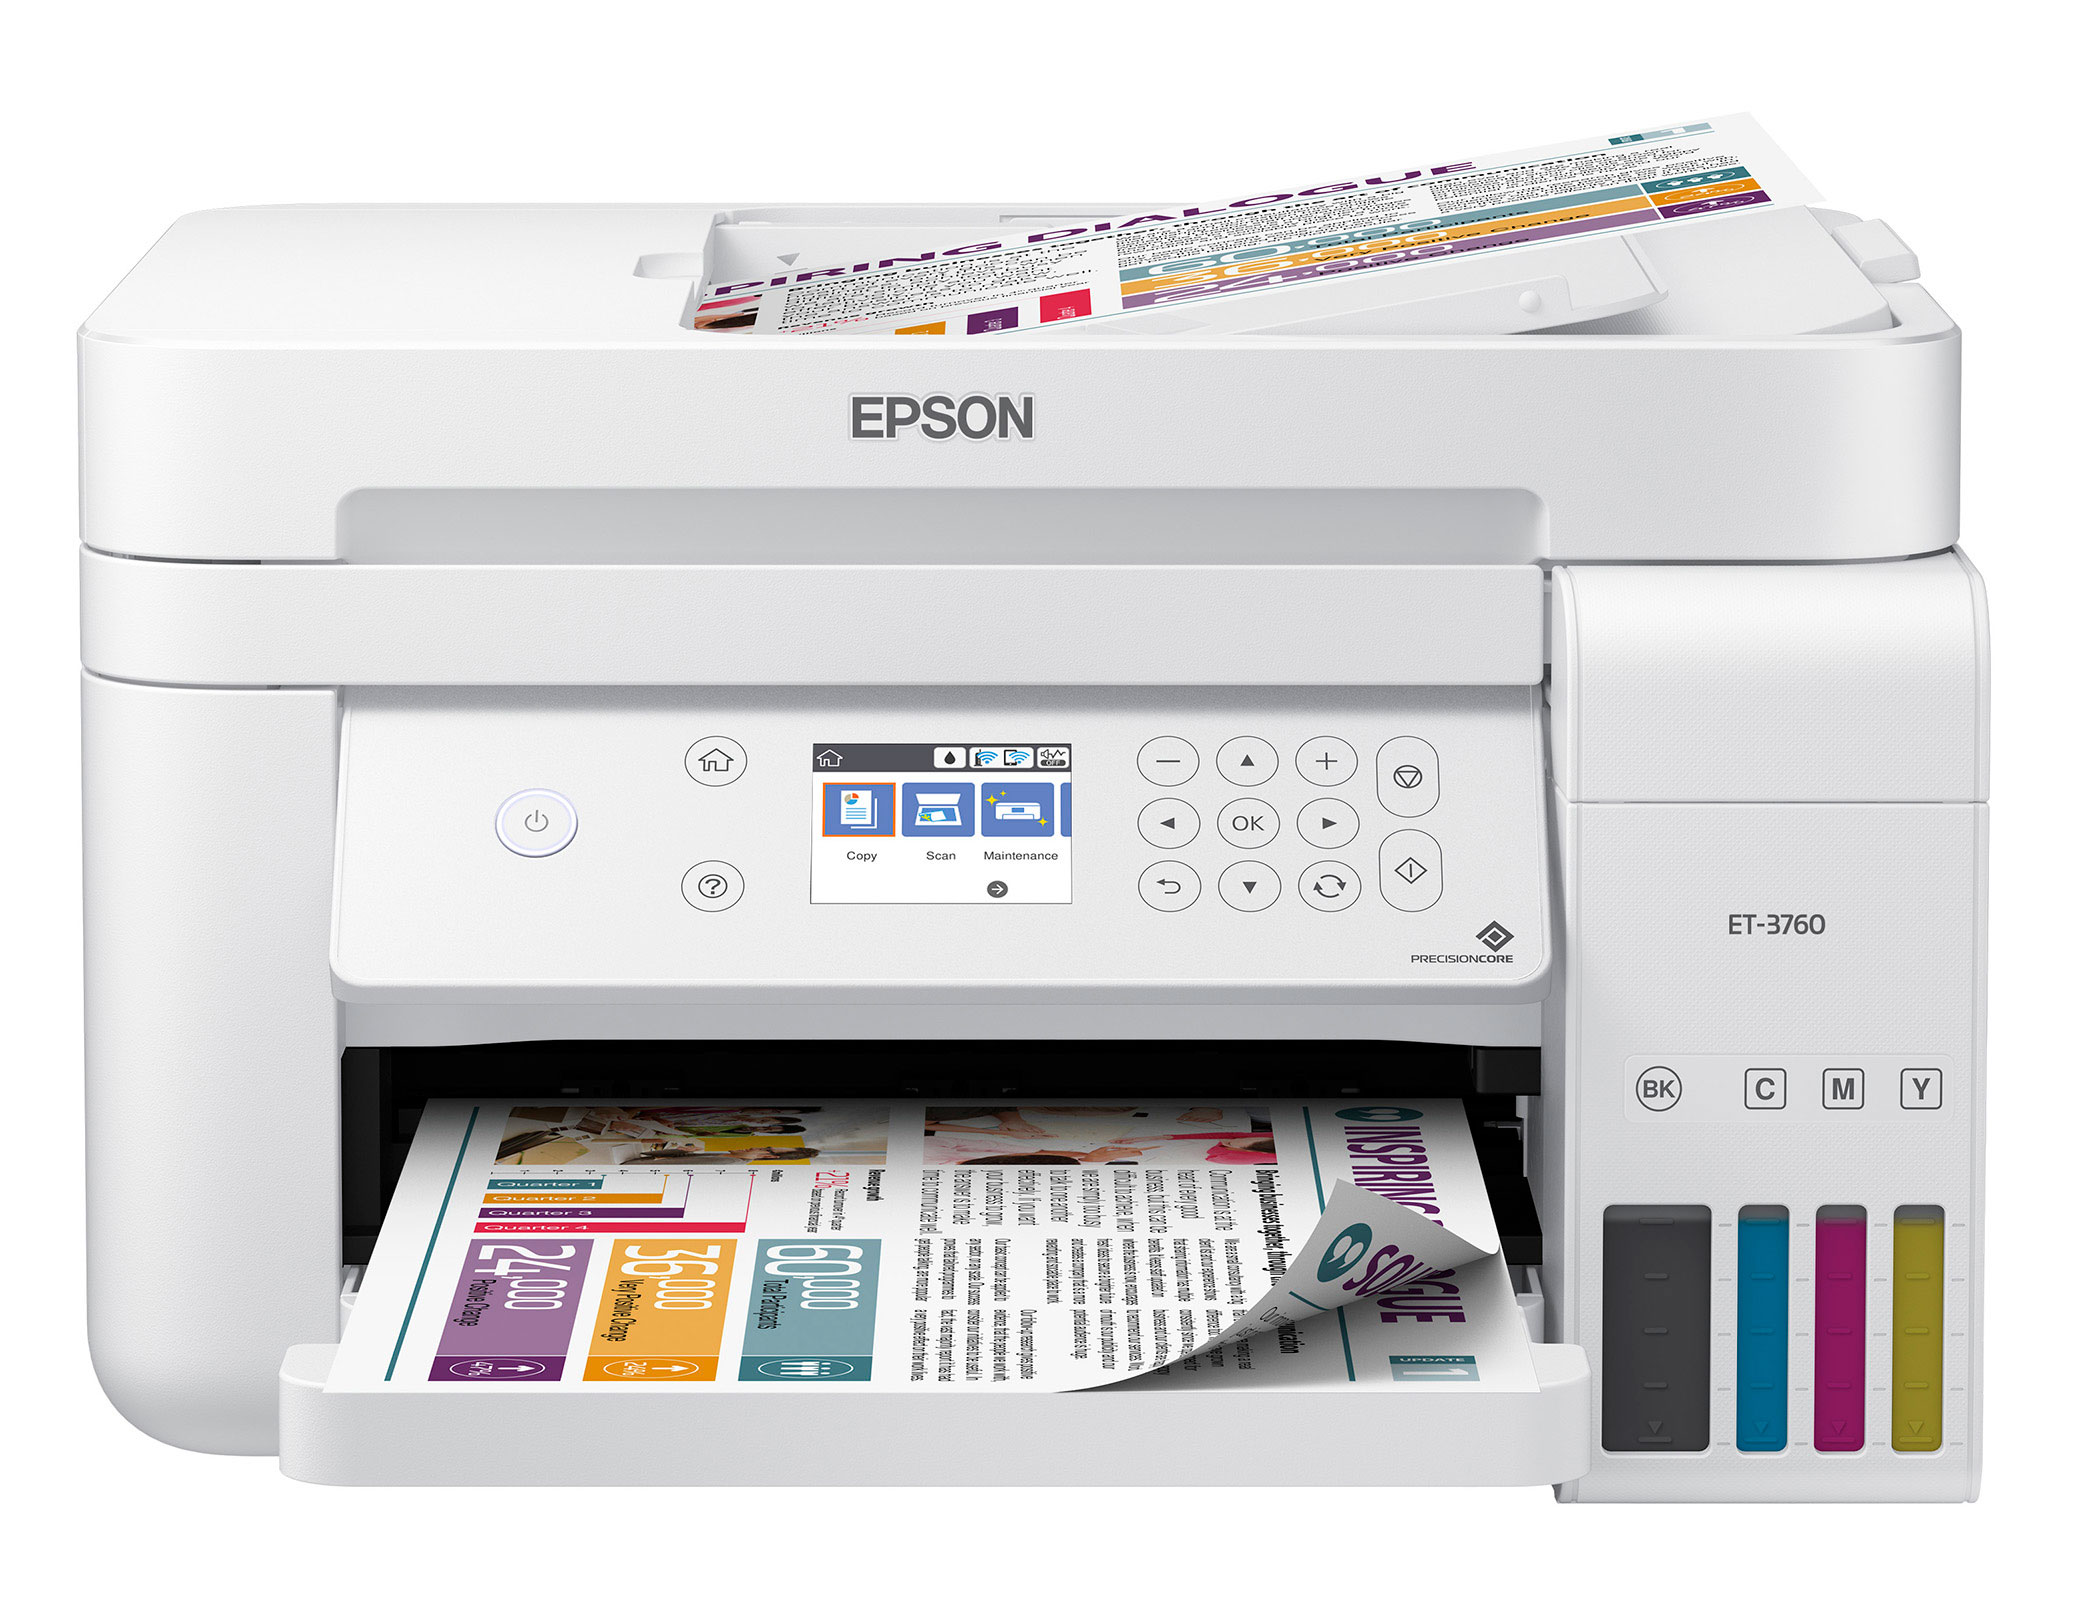 The Epson EcoTank ET-3760 All-in-One Supertank Printer offers wireless, cartridge-free printing with ADF and time-saving features.